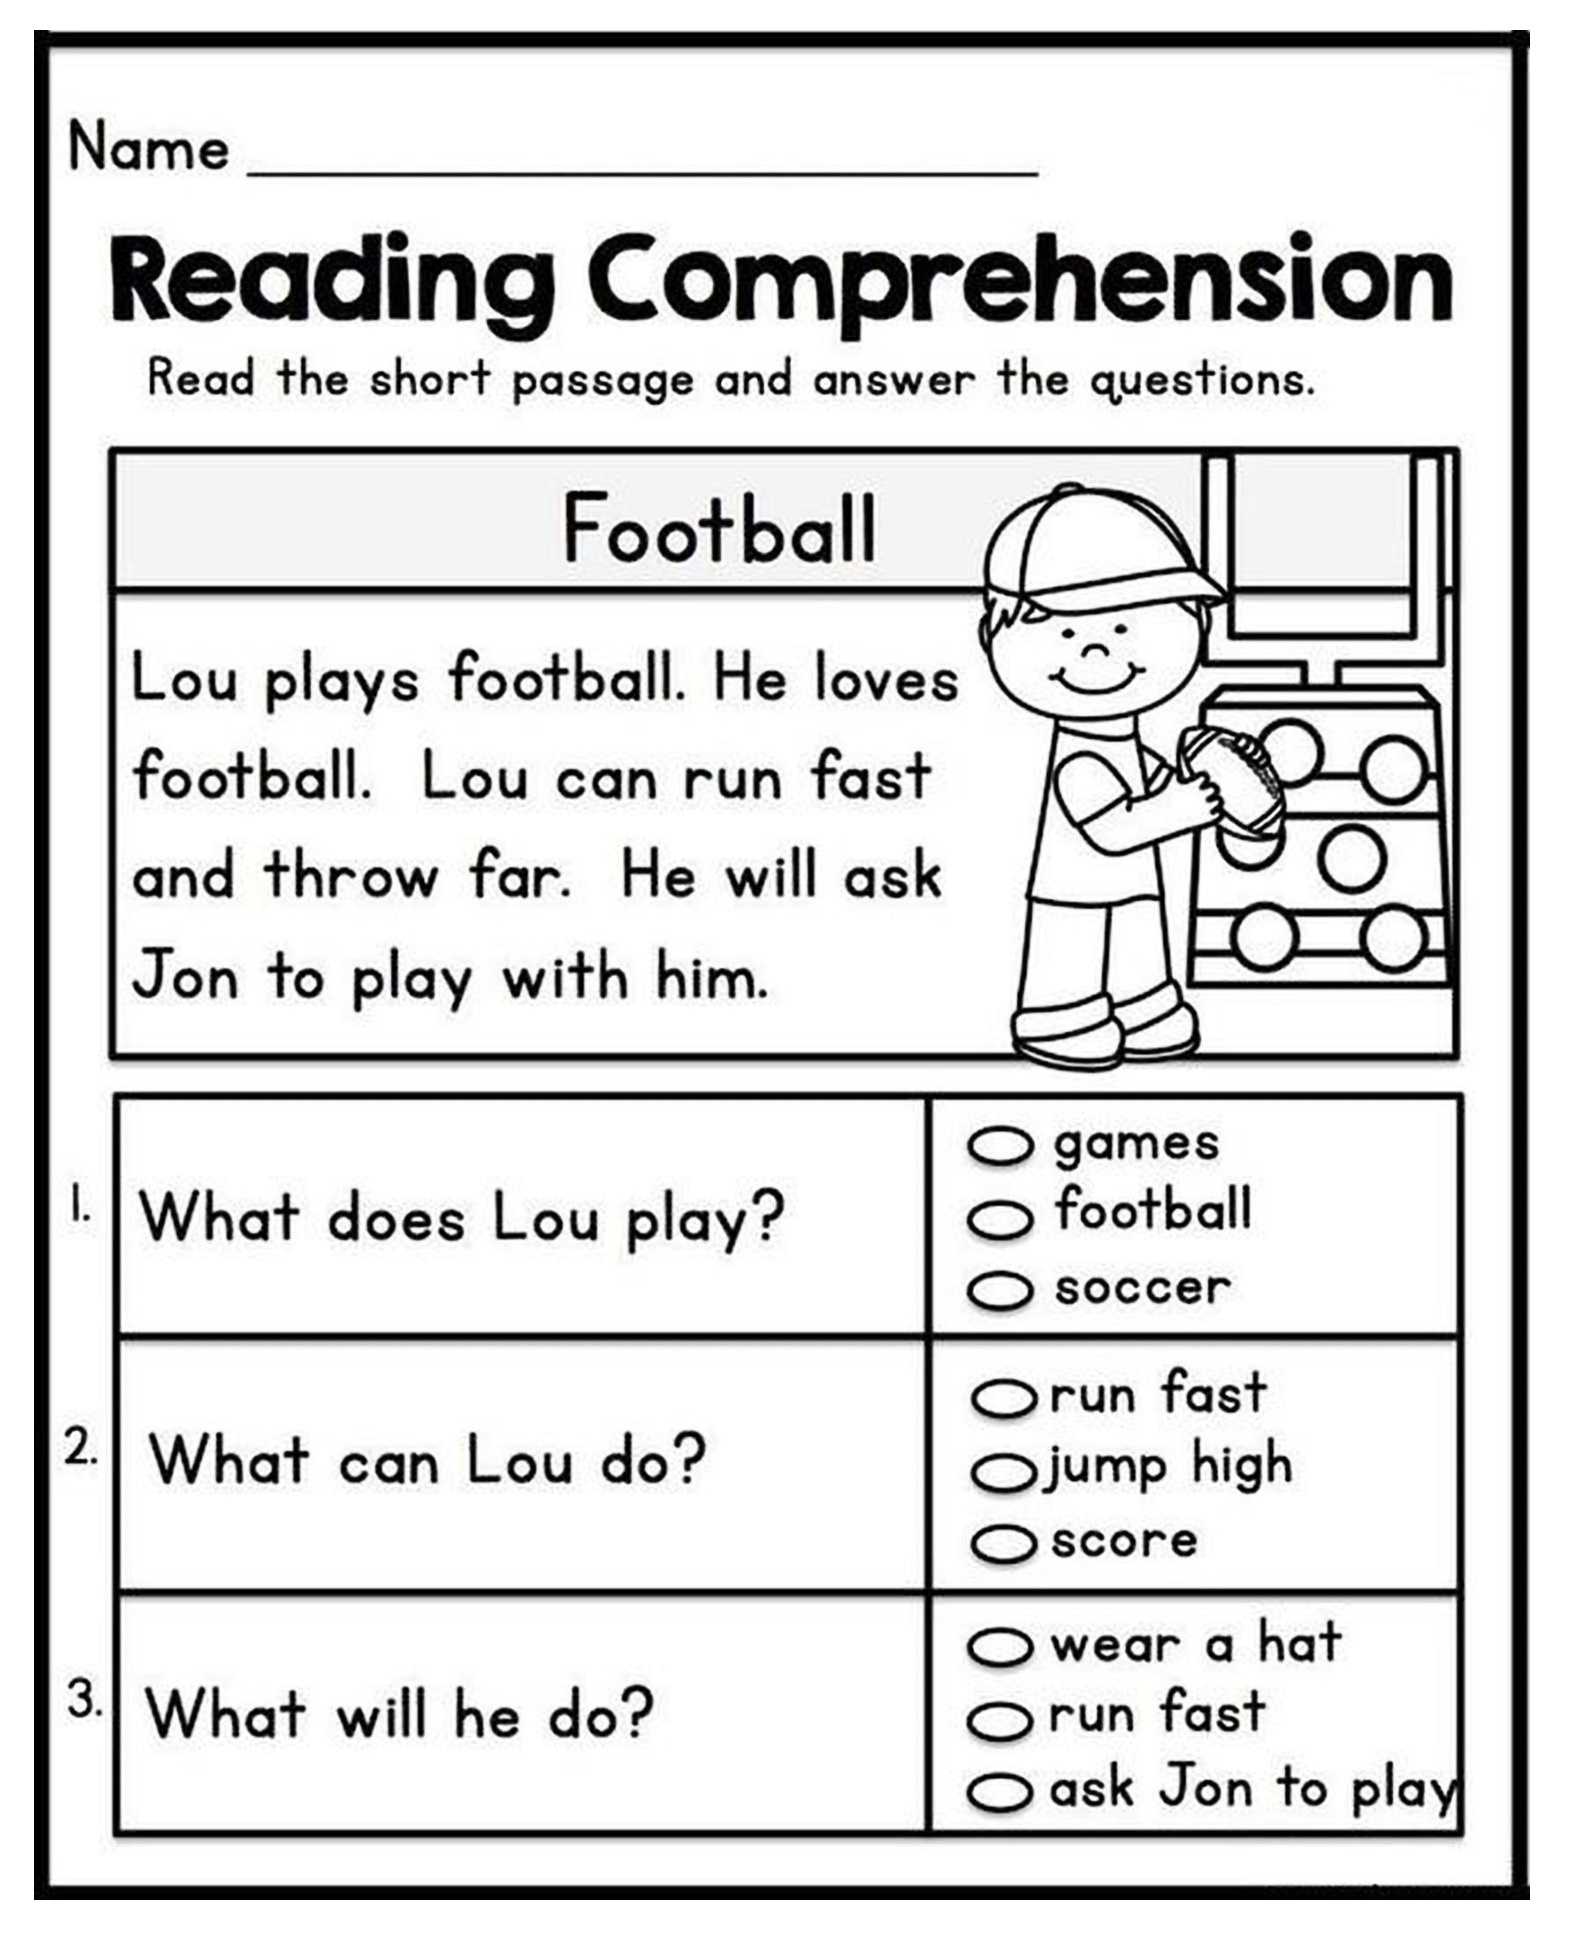 Reading Comprehension For Grade 1 With Questions